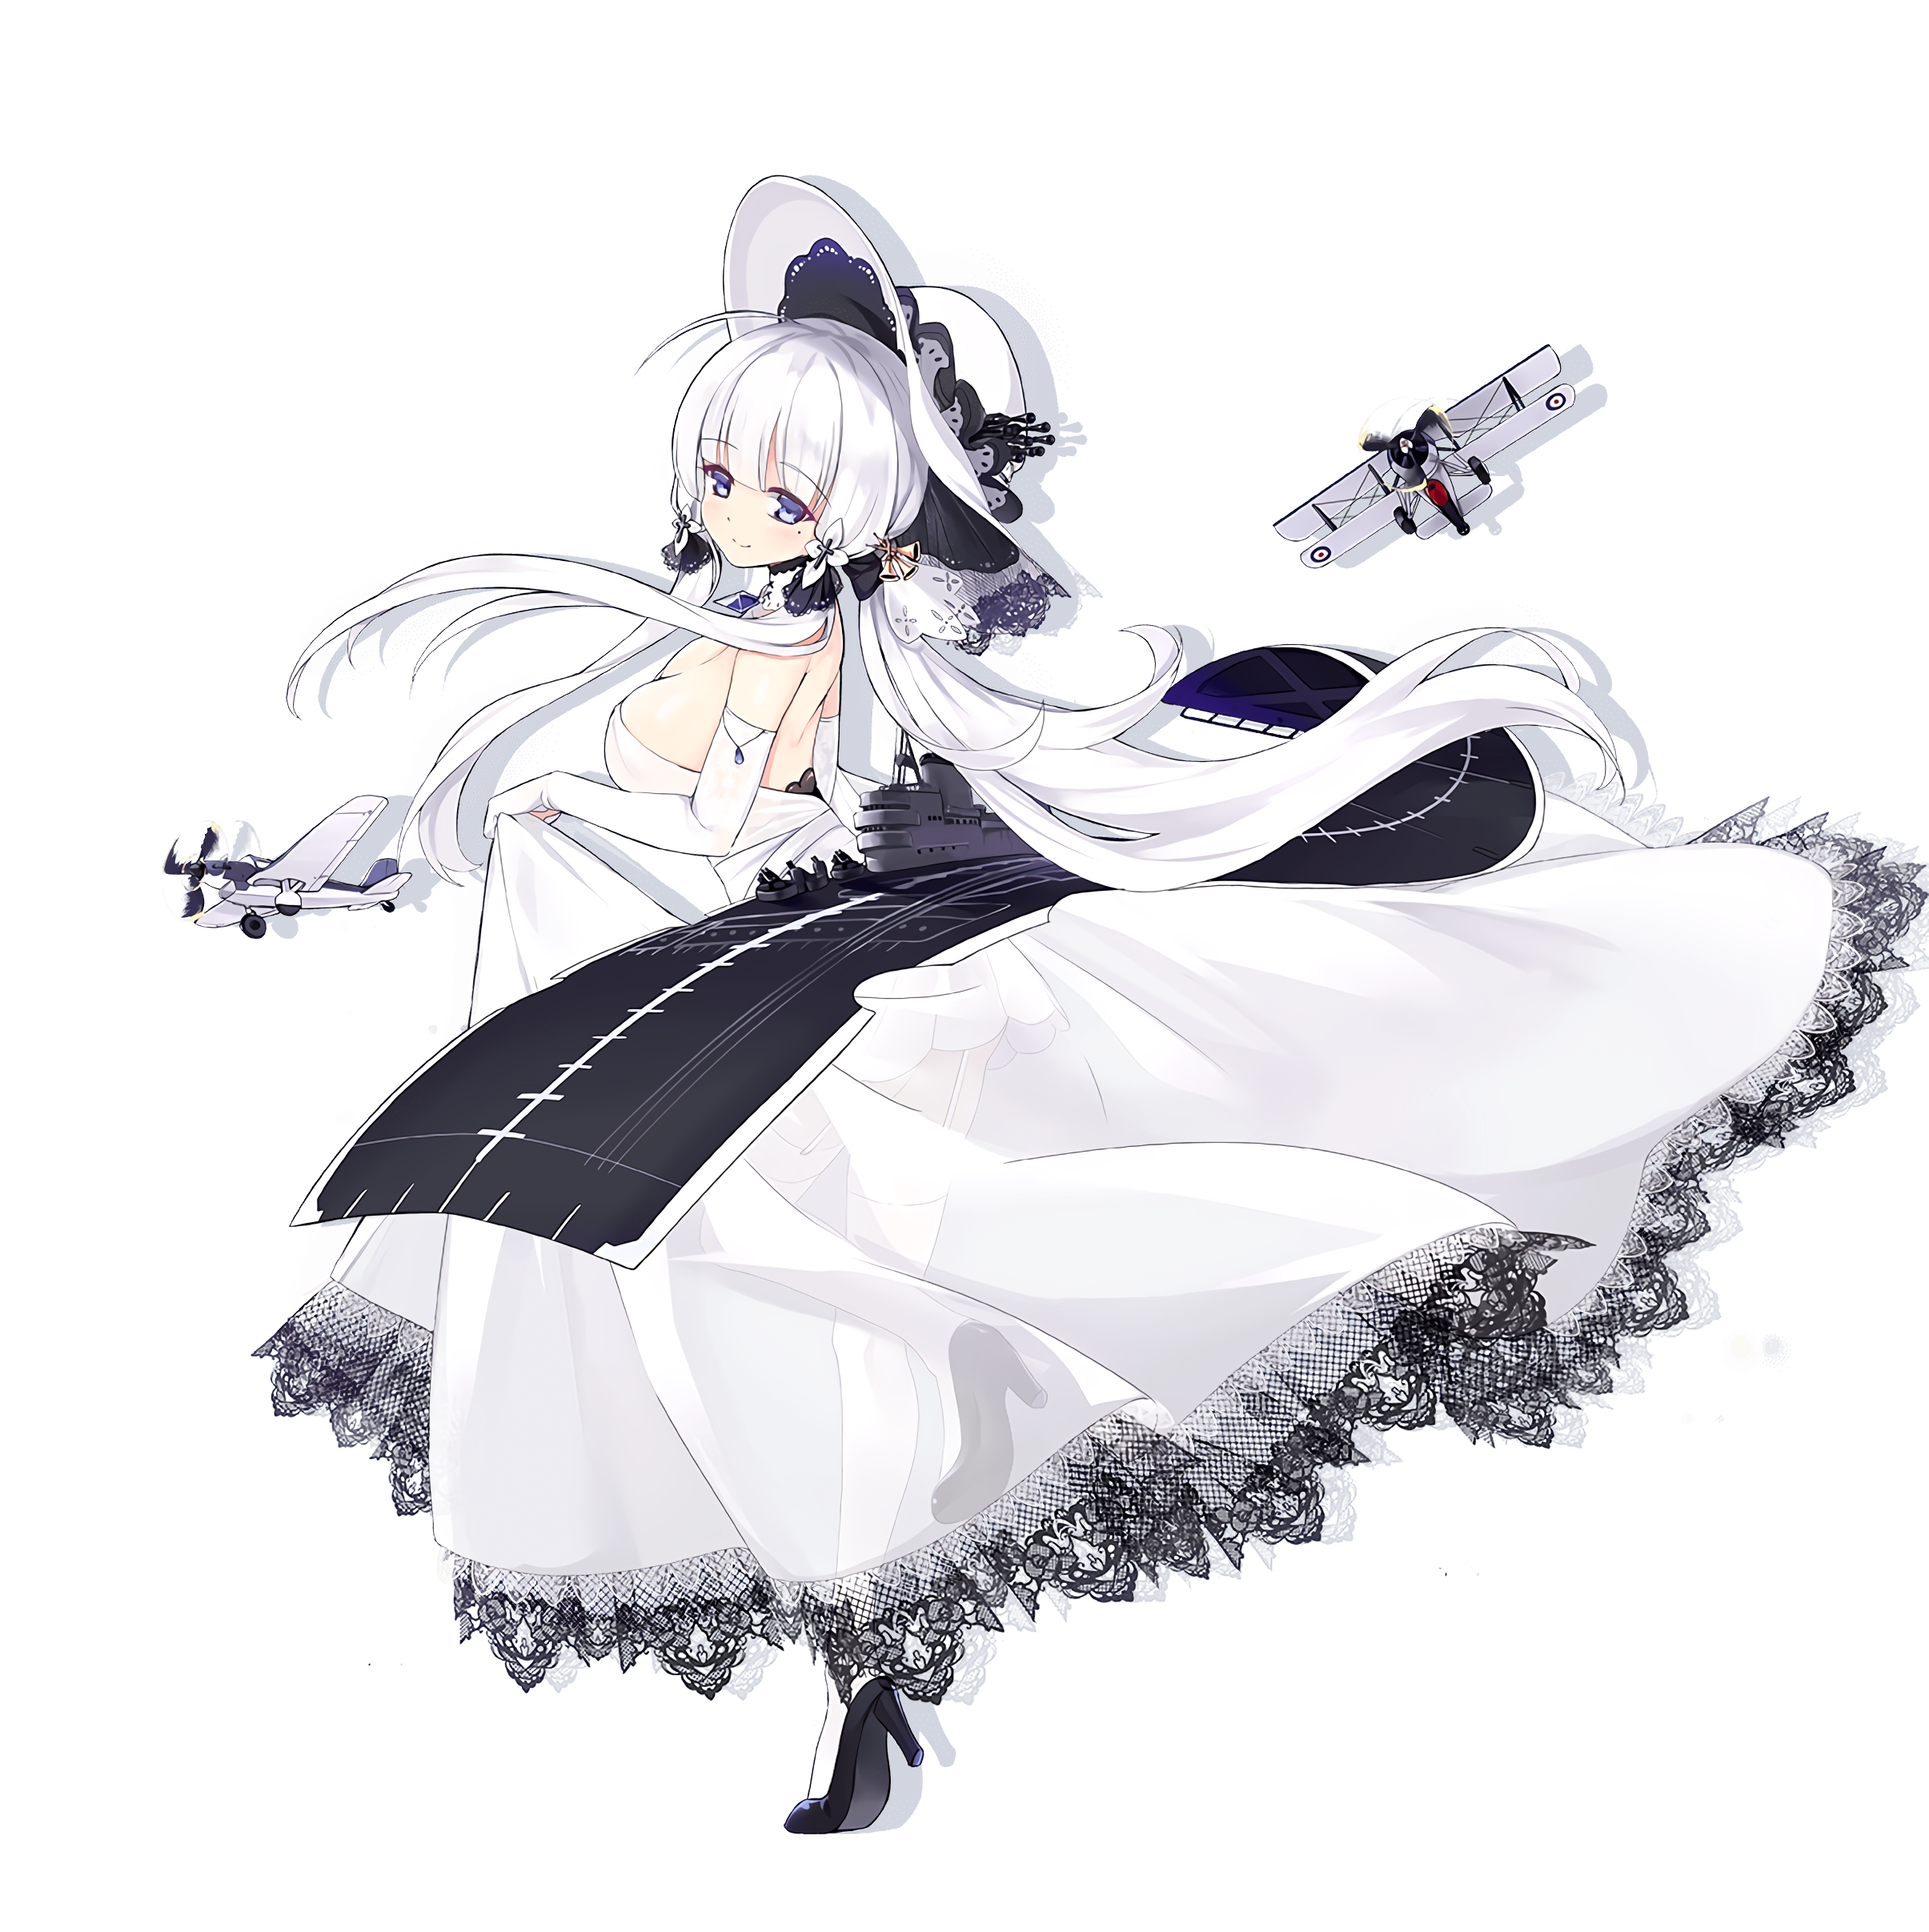 Anime 2410x2414 Azur Lane Illustrious (Azur Lane) black background